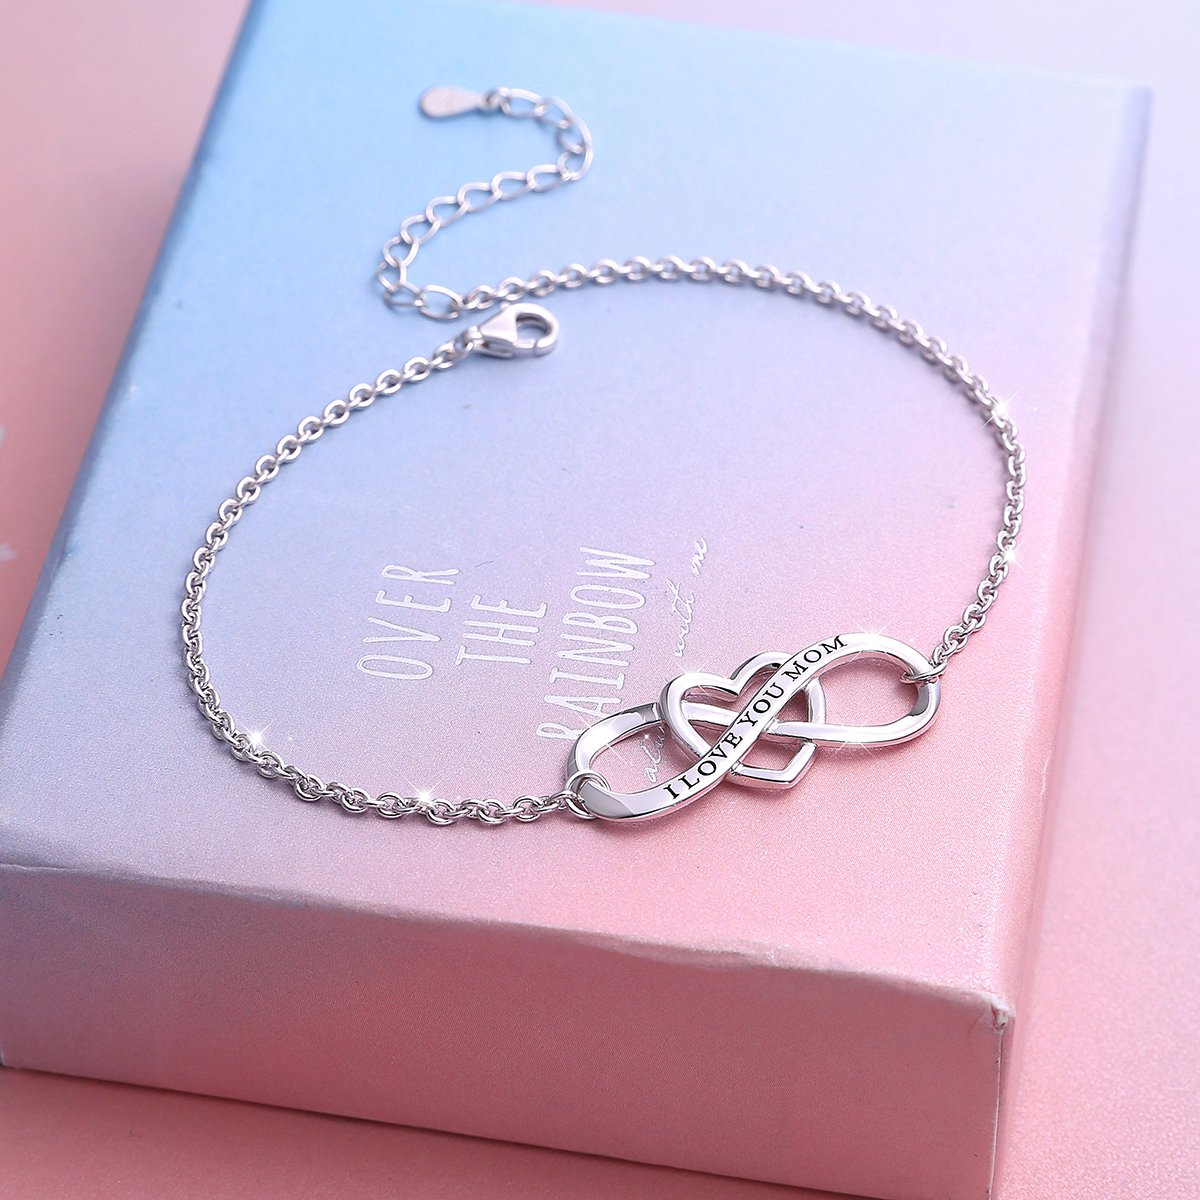 """SILVER MOUNTAIN S925 Sterling Silver """"I Love You Mom """" Heart Infinity Bracelet for Mother by SILVER MOUNTAIN (Image #3)"""